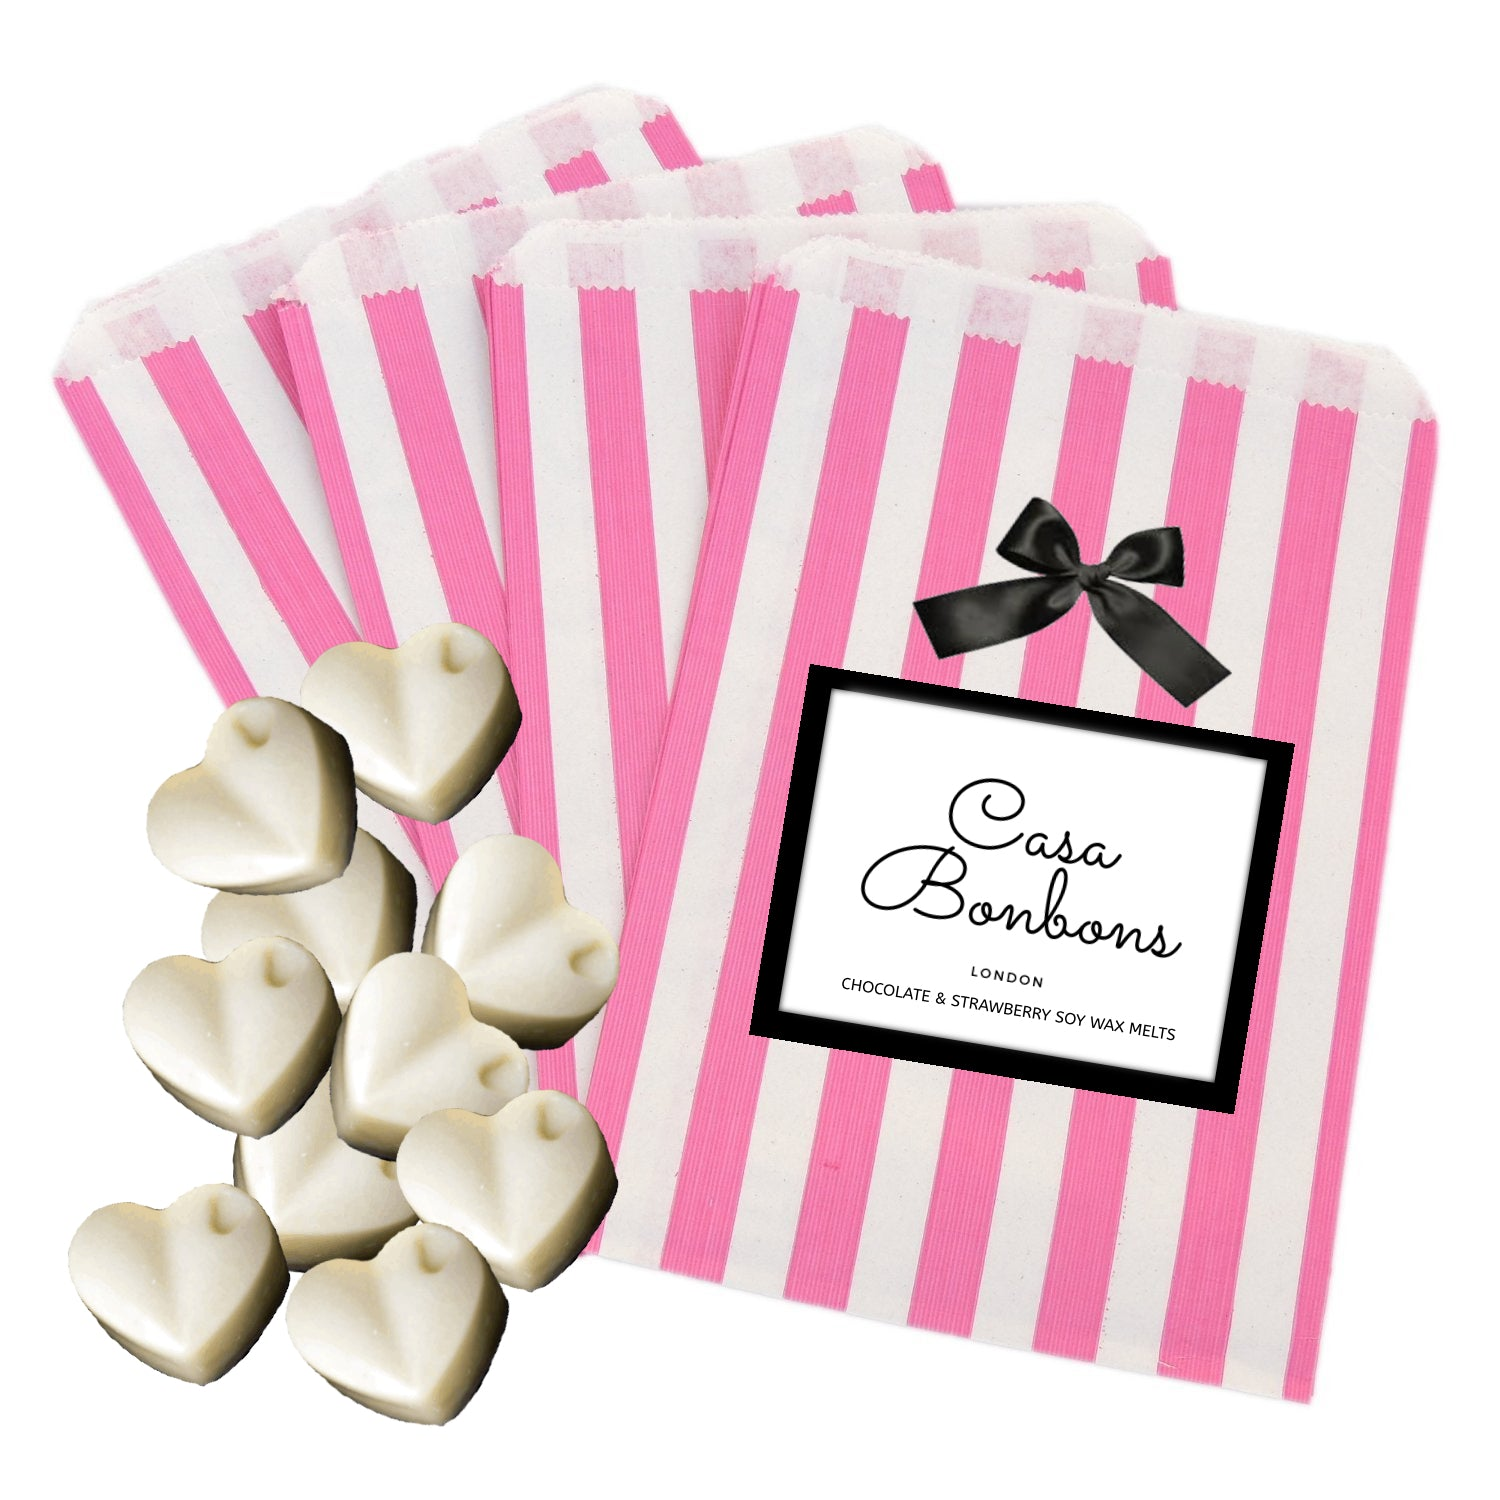 Chocolate & Strawberry gentle scented Soy Wax Melts (10 hearts),  PRE ORDER delivery end of February - natoorio